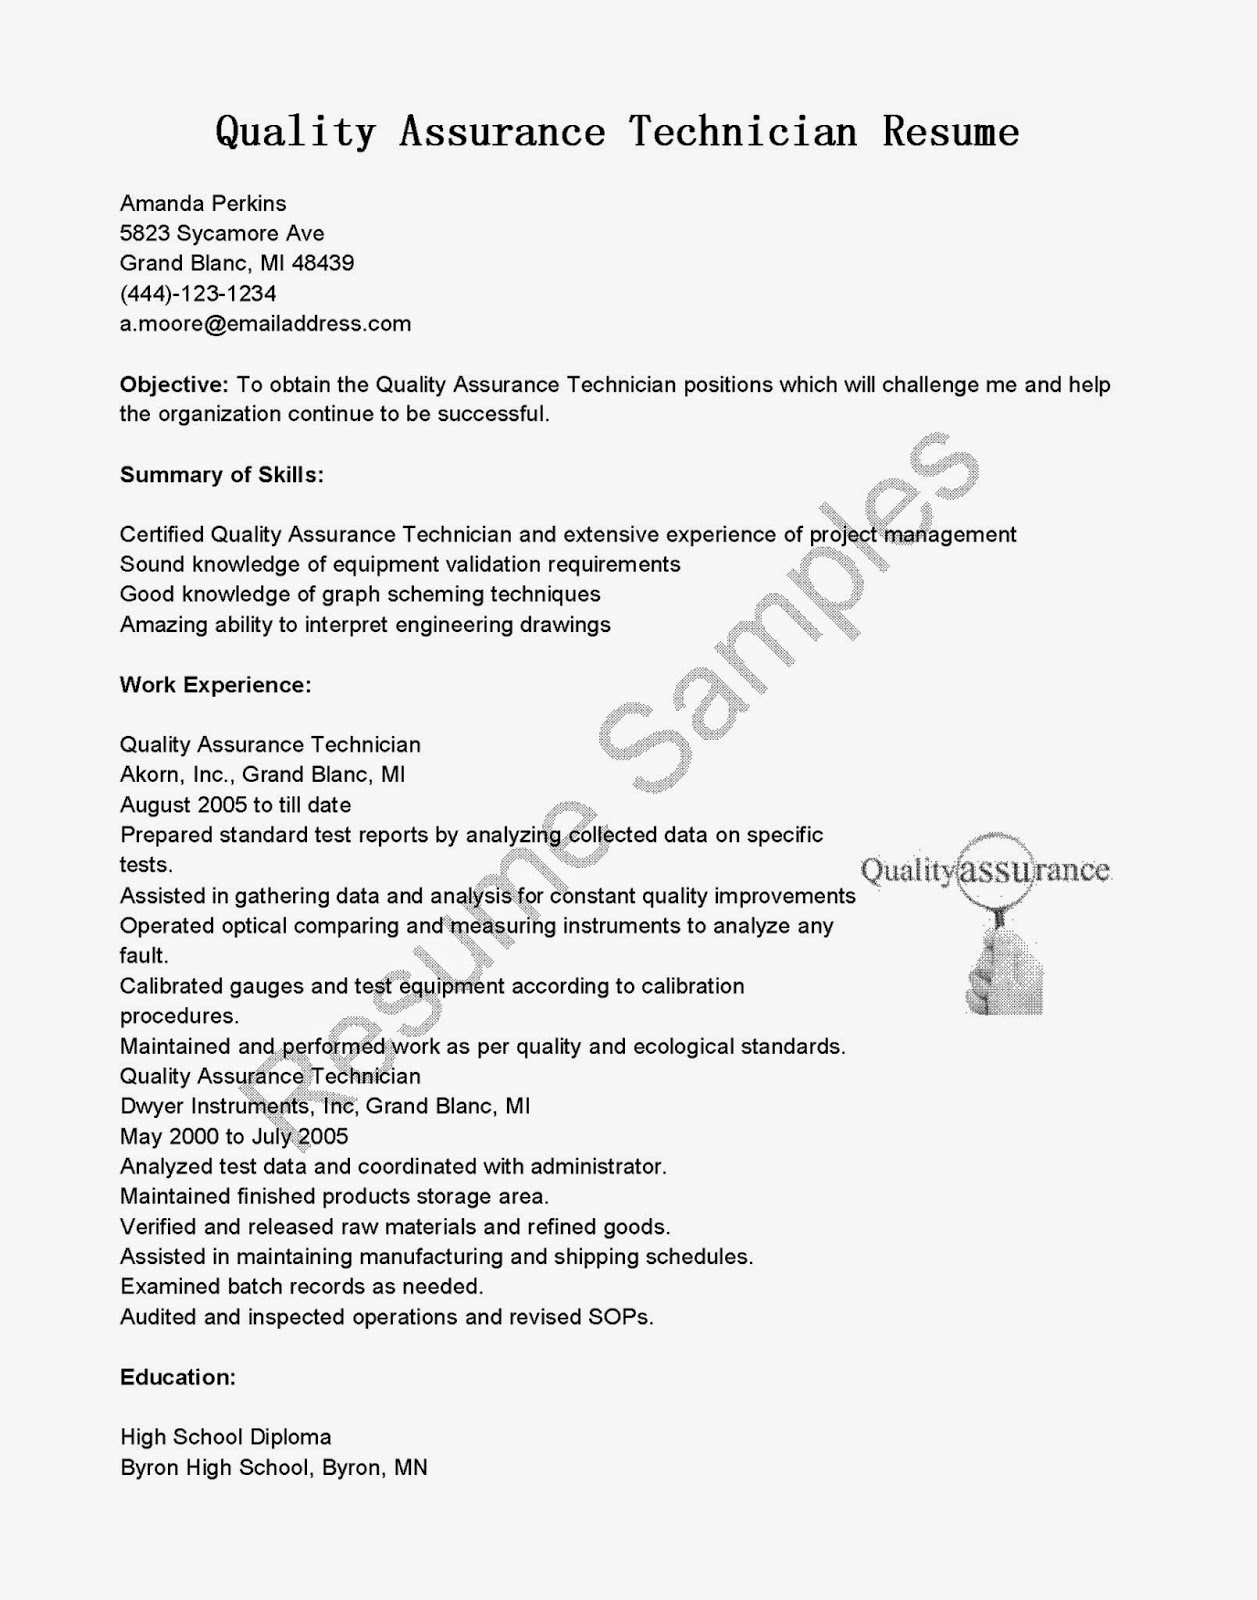 Behavioral Technician Resume Sample Doc Stimulating Certified Pharmacy  Technician Resume Brefash Stimulating Certified Pharmacy Technician Resume  Pharmacy Tech Resume Samples